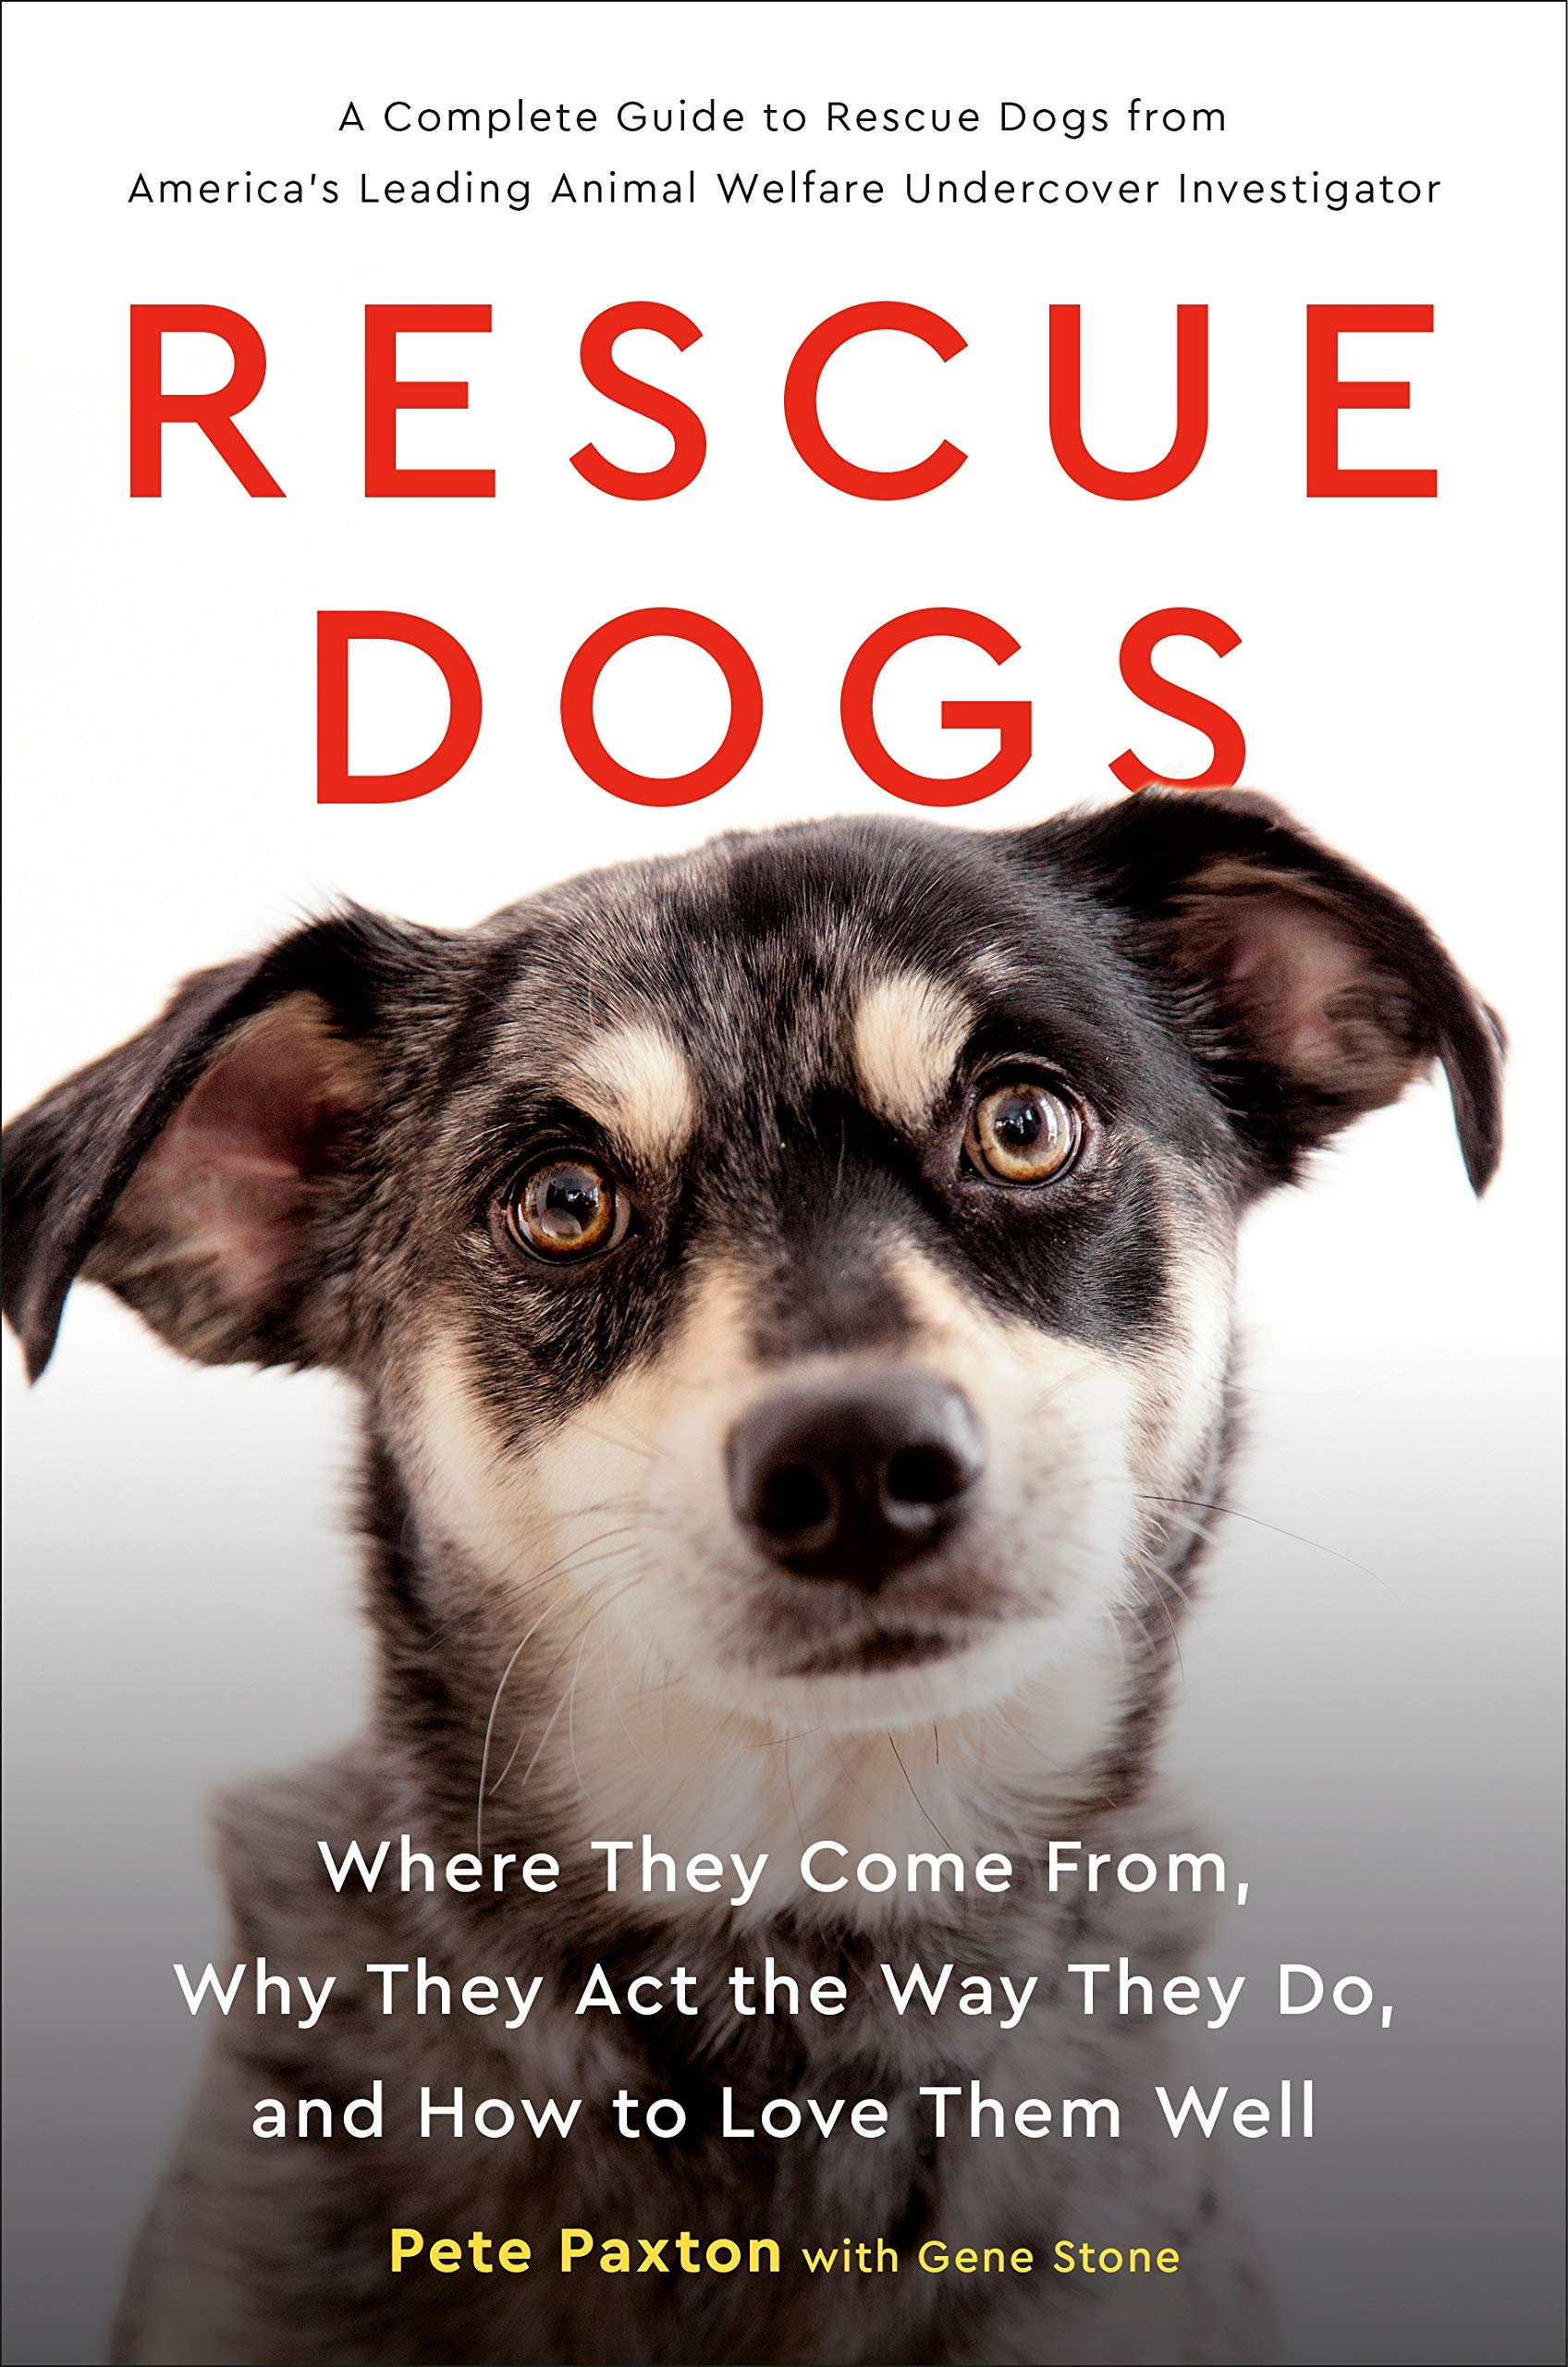 Rescue Dogs: Where They Come From, Why They Act the Way They Do, and How to Love Them Well by TarcherPerigee